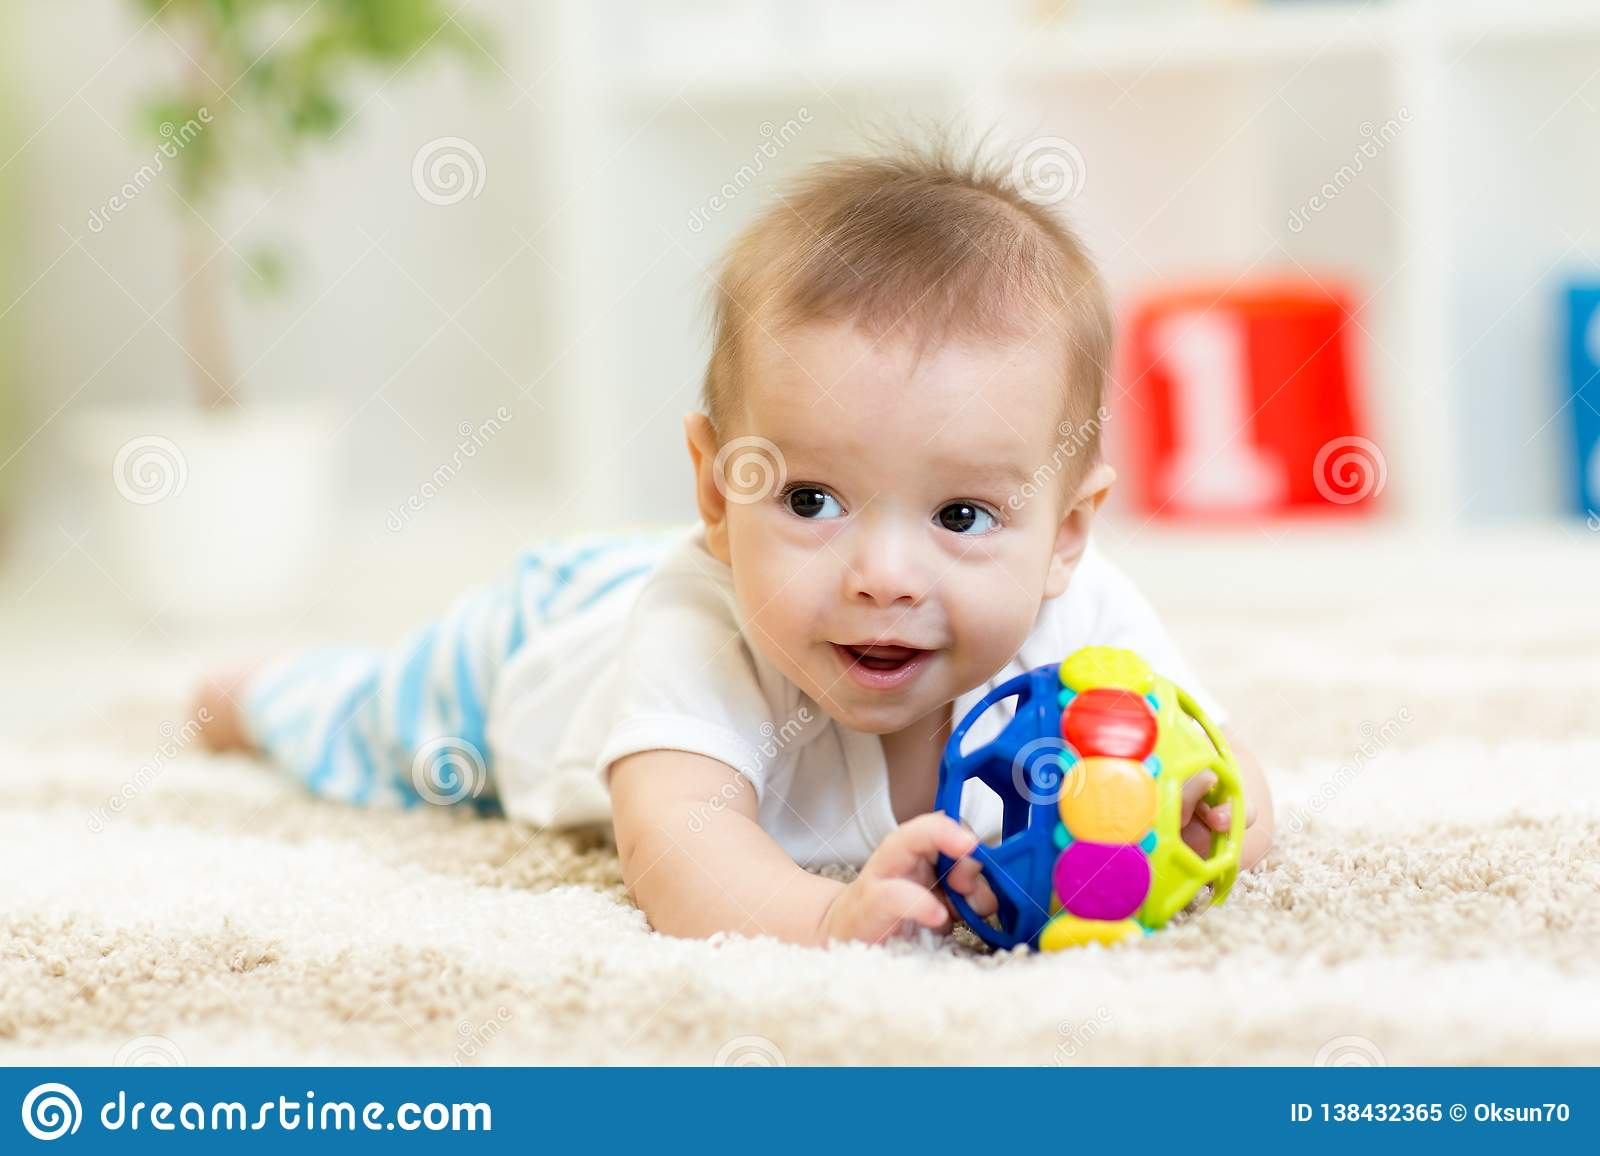 Adorable baby having fun with toy on cozy rug. Happy cheerful kid playing on the floor